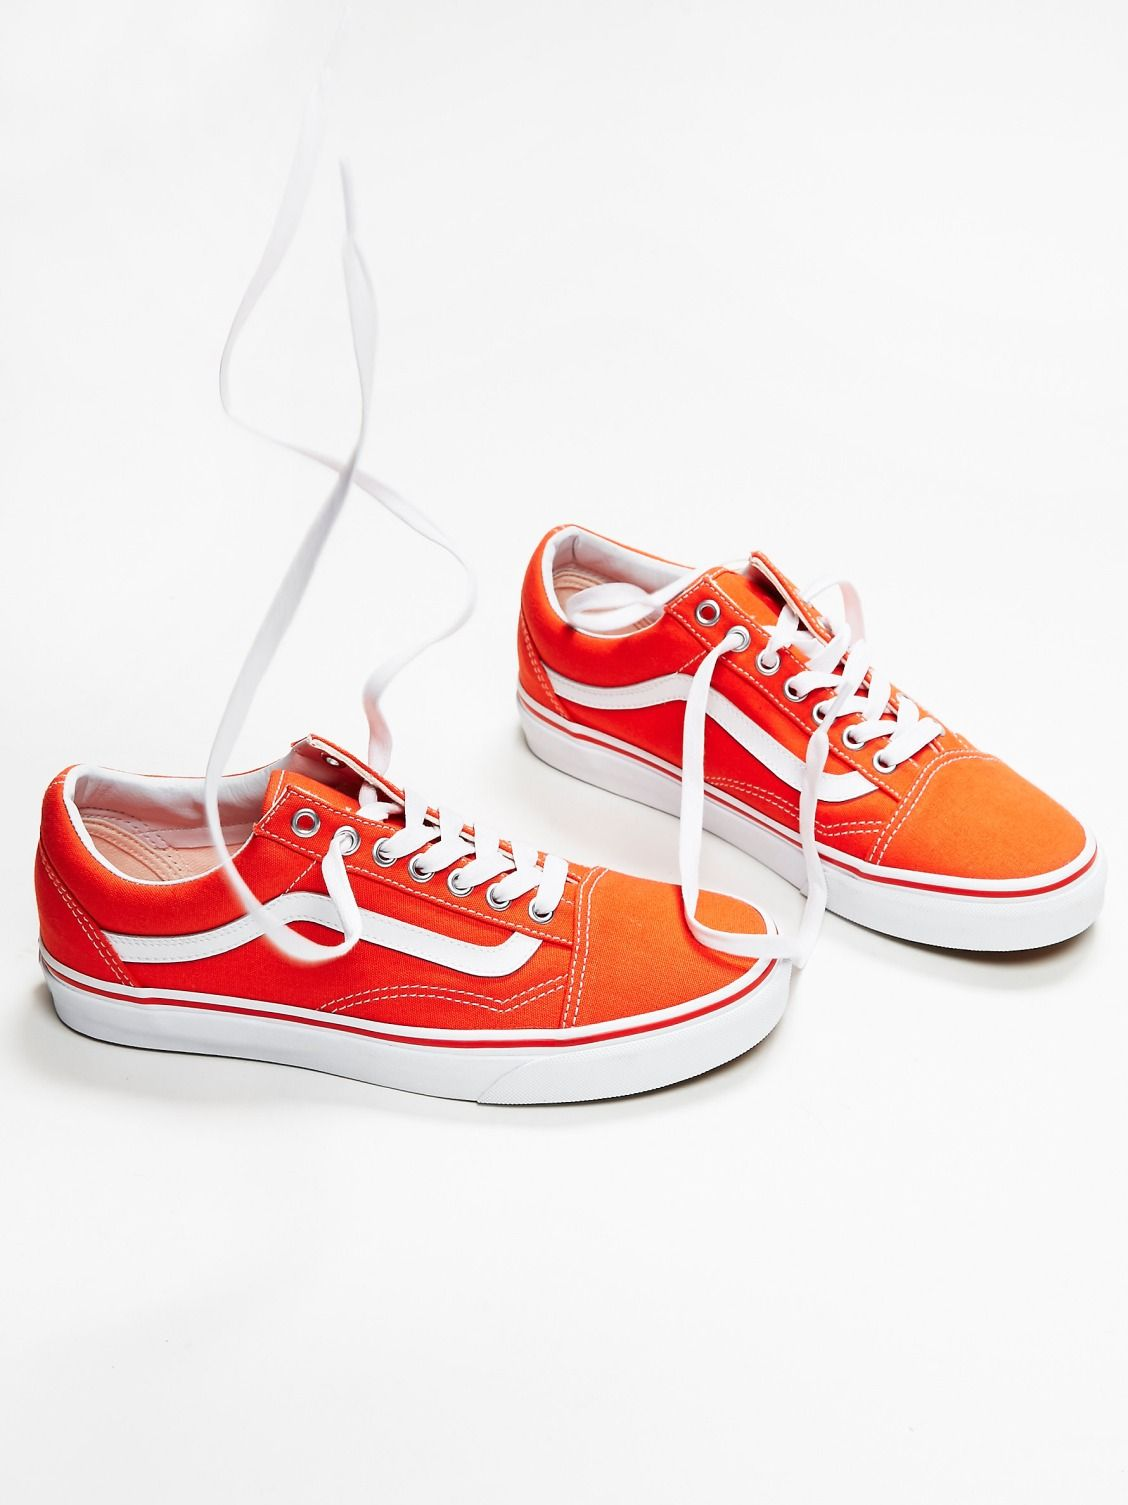 Vans Cherry Tomato Old Skool Canvas Sneaker at Free People Clothing Boutique 73059e51d75b